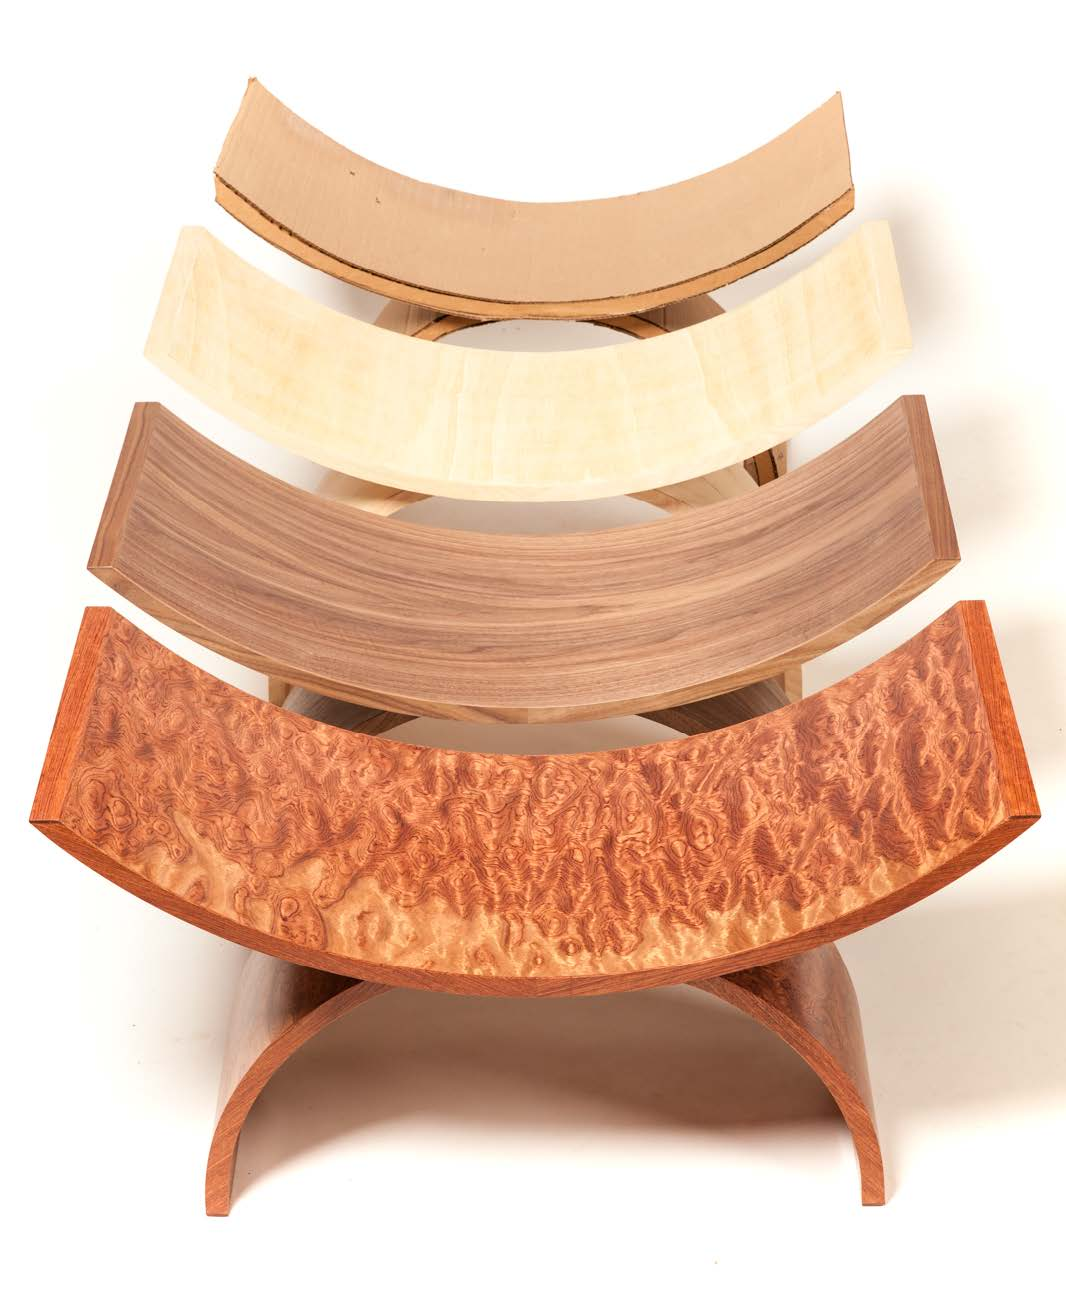 Double Arch Chair | Bubinga Veneer | Custom Wood Furniture